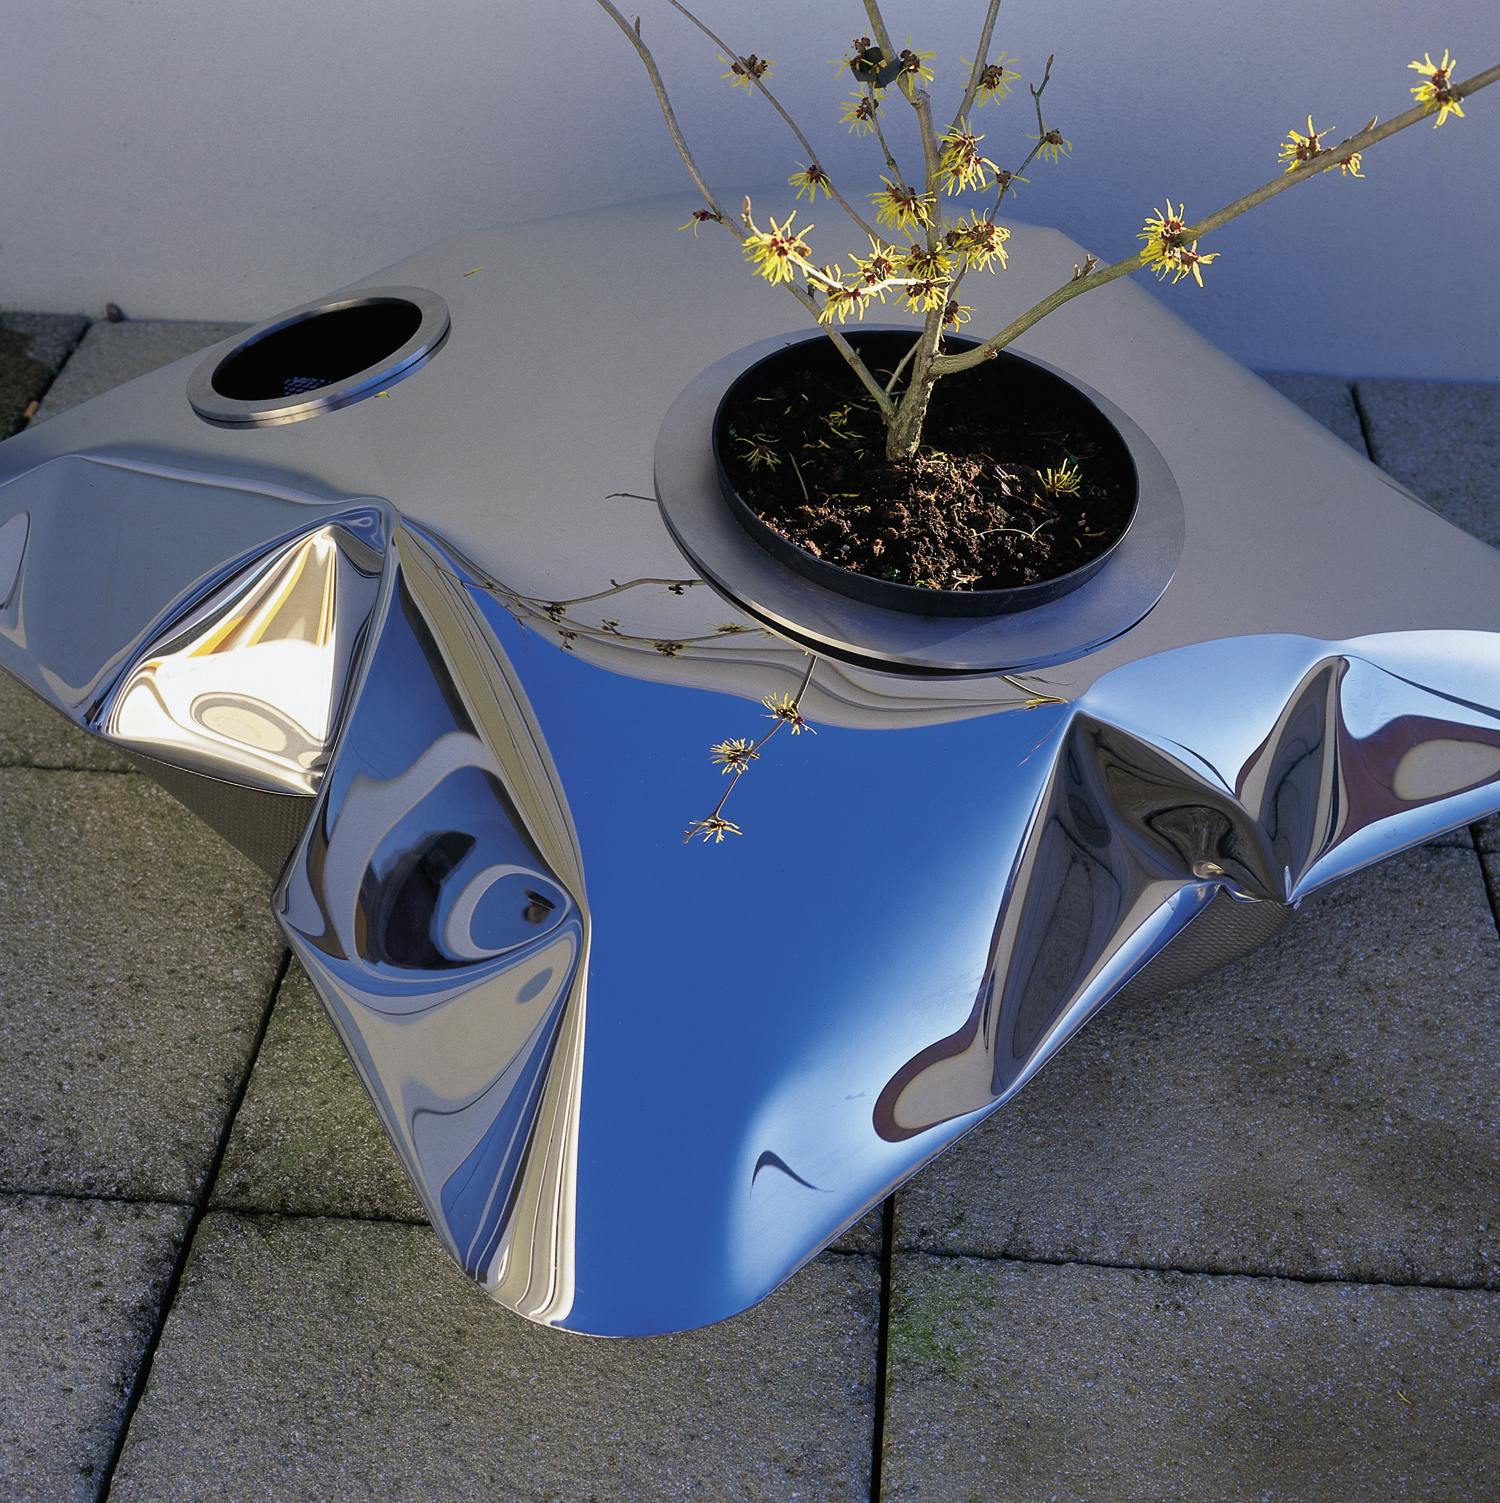 P    illow Planters   Blown mirror polished stainless steel table (please see our  collection  for further details)